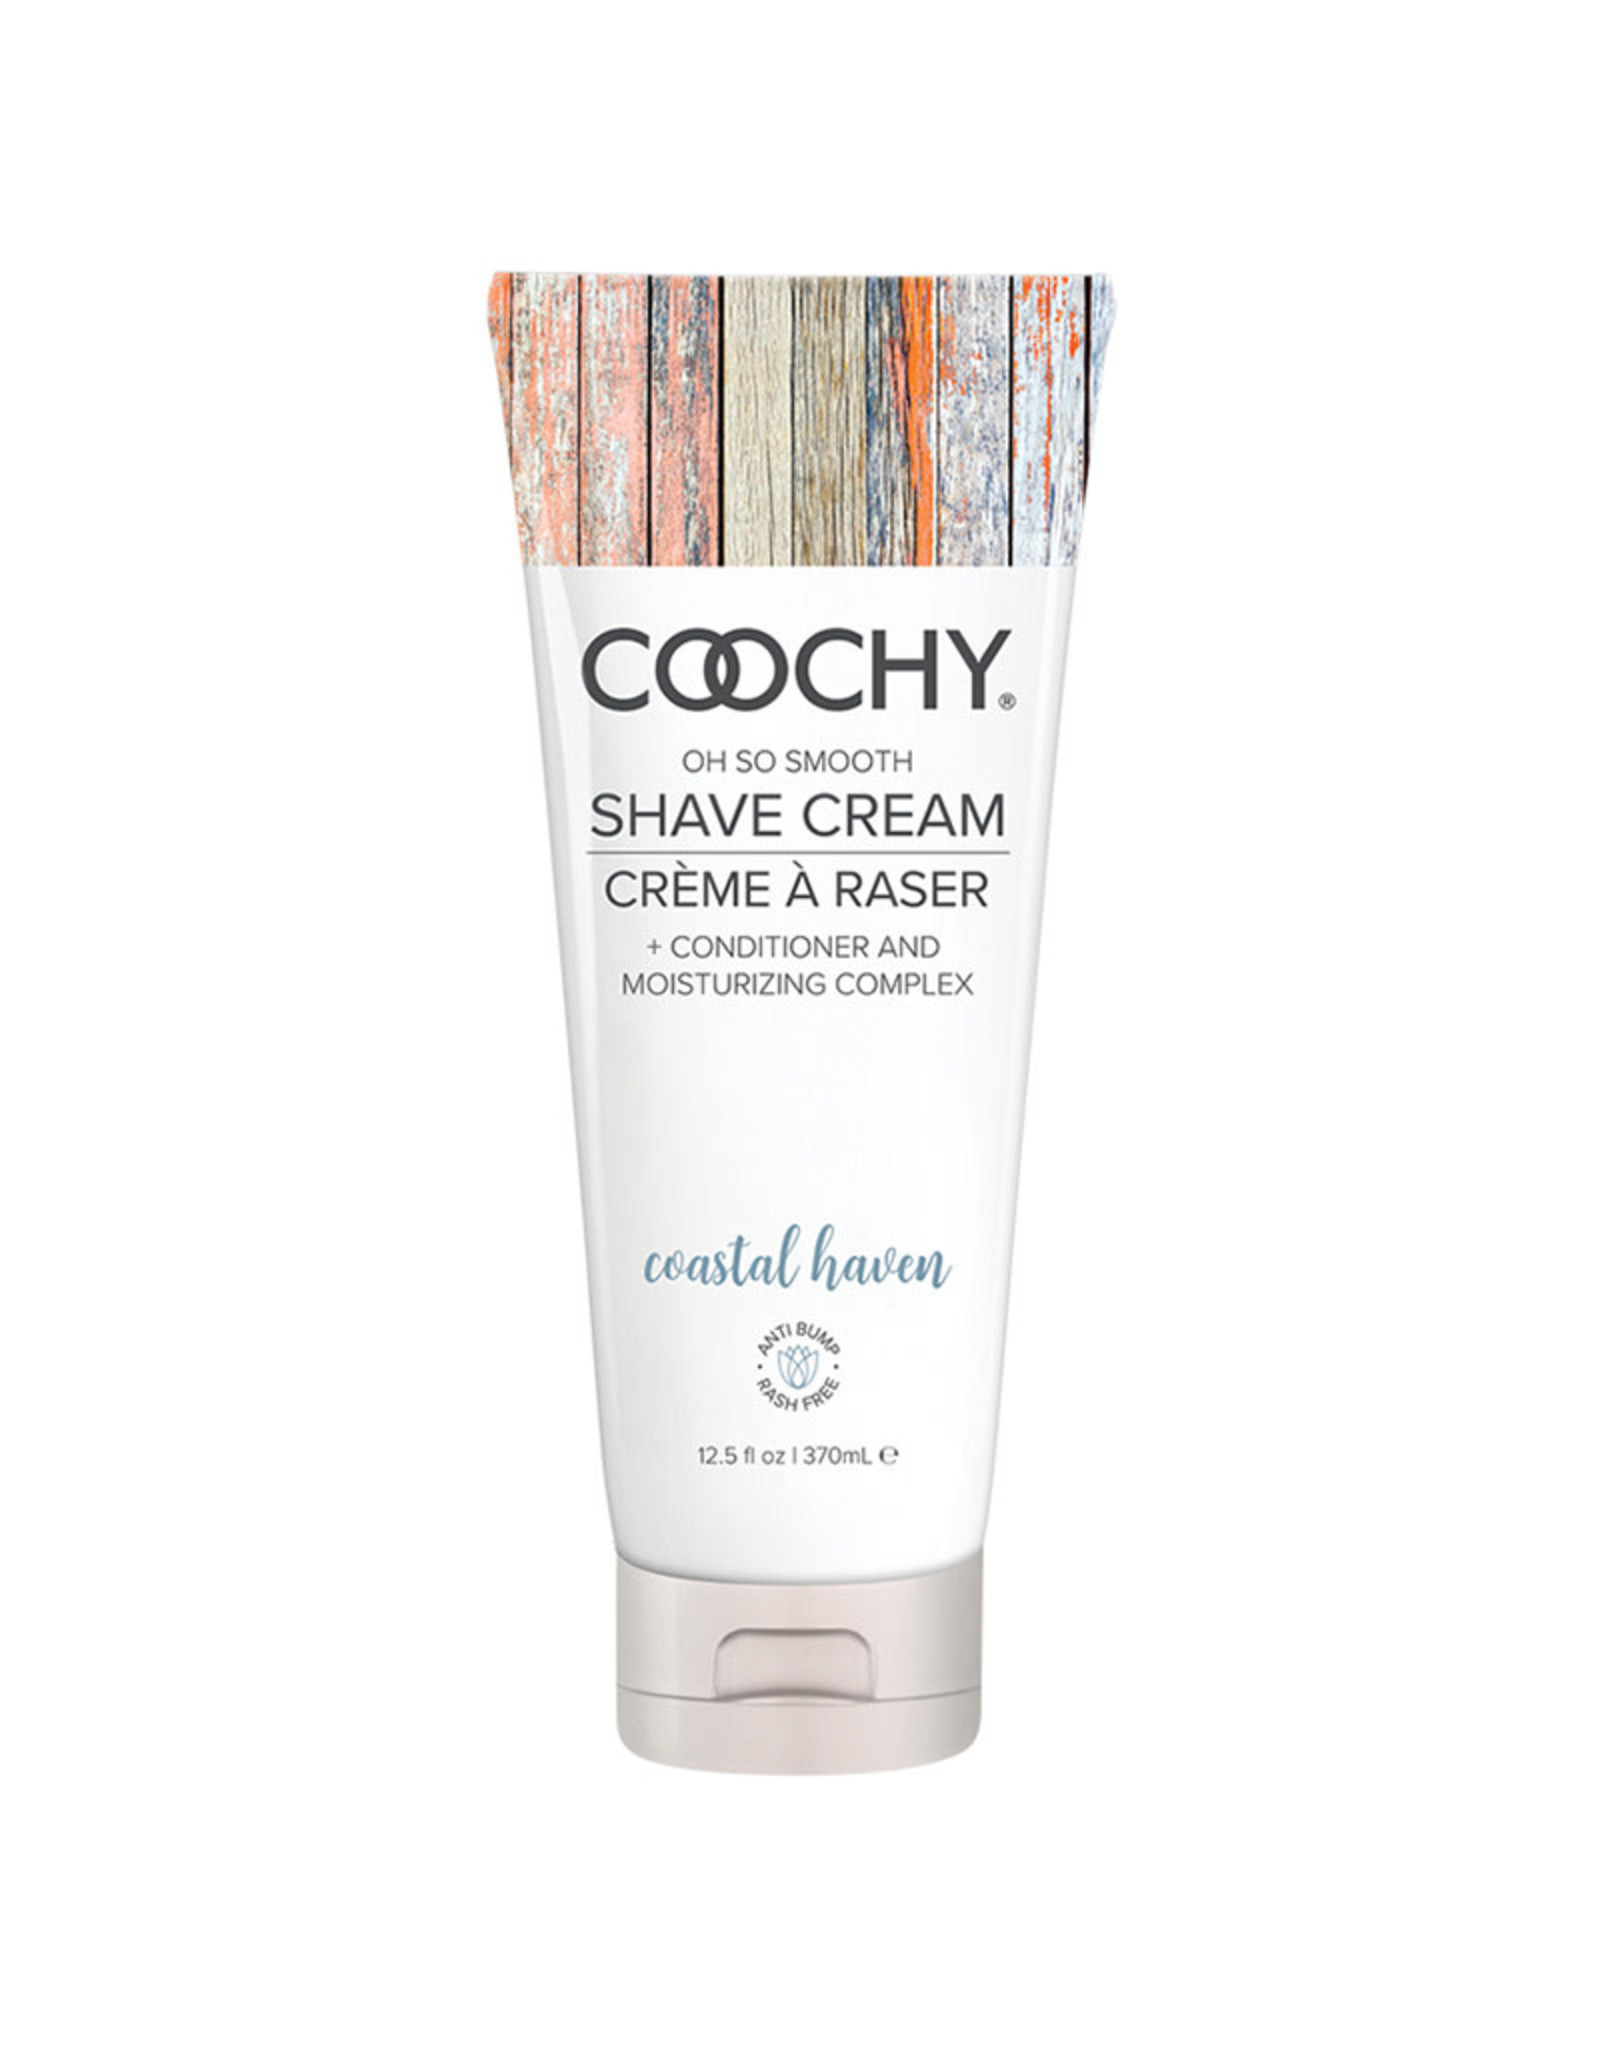 Coochy Coochy - Coastal Haven (12.5 oz)